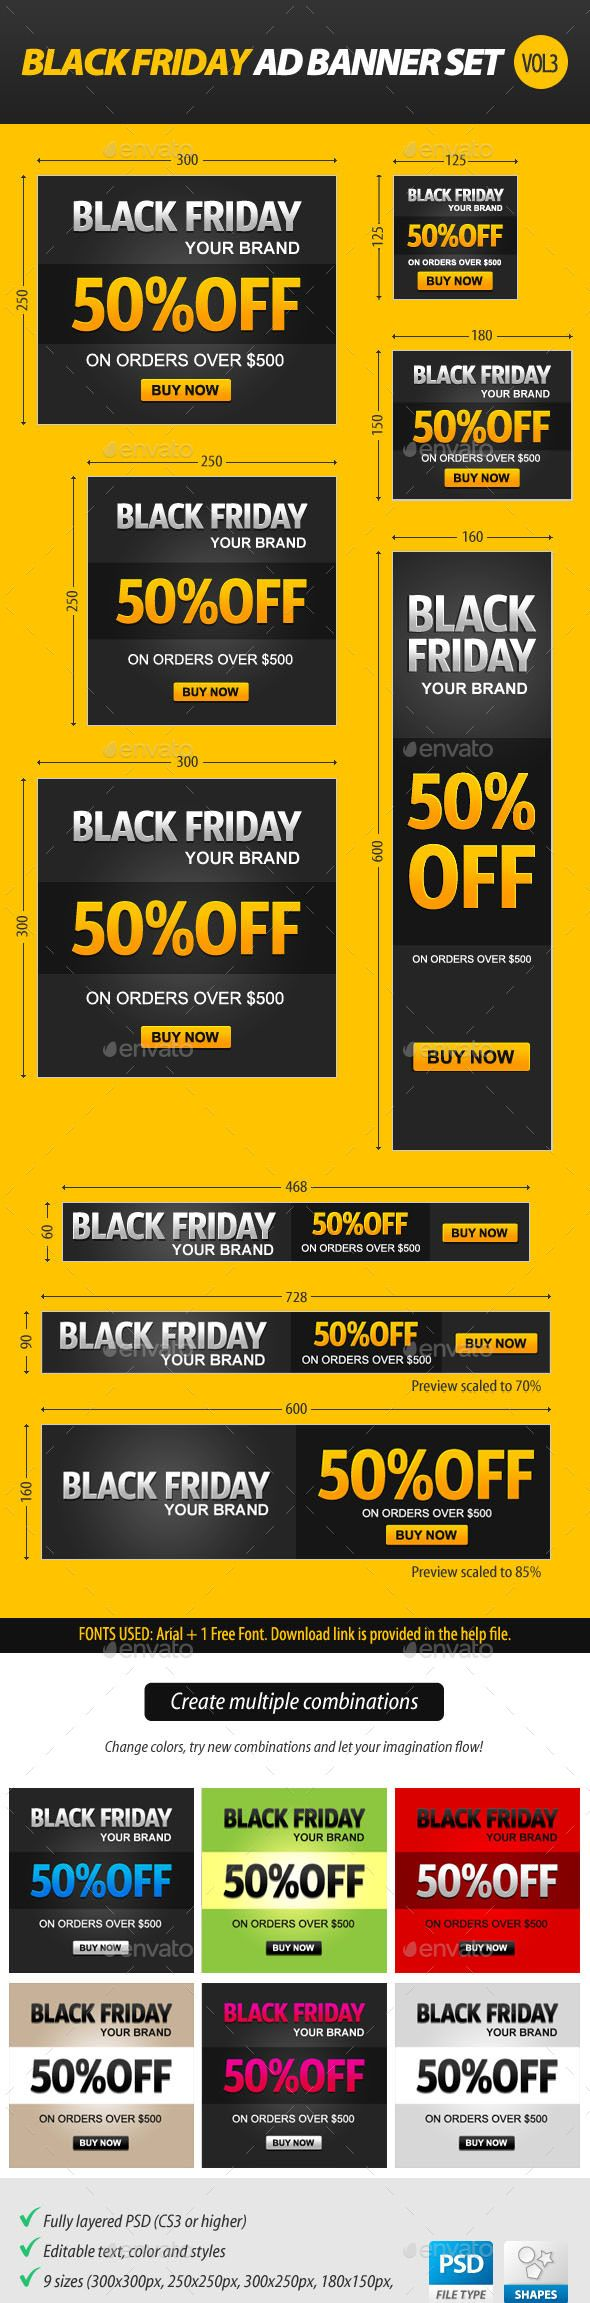 Black Friday Ad Banner Set Template PSD | Buy and Download: http://graphicriver.net/item/black-friday-ad-banner-set-vol3/9449511?WT.oss_phrase=&WT.oss_rank=10&WT.z_author=stoat&WT.ac=search_thumb&ref=ksioks